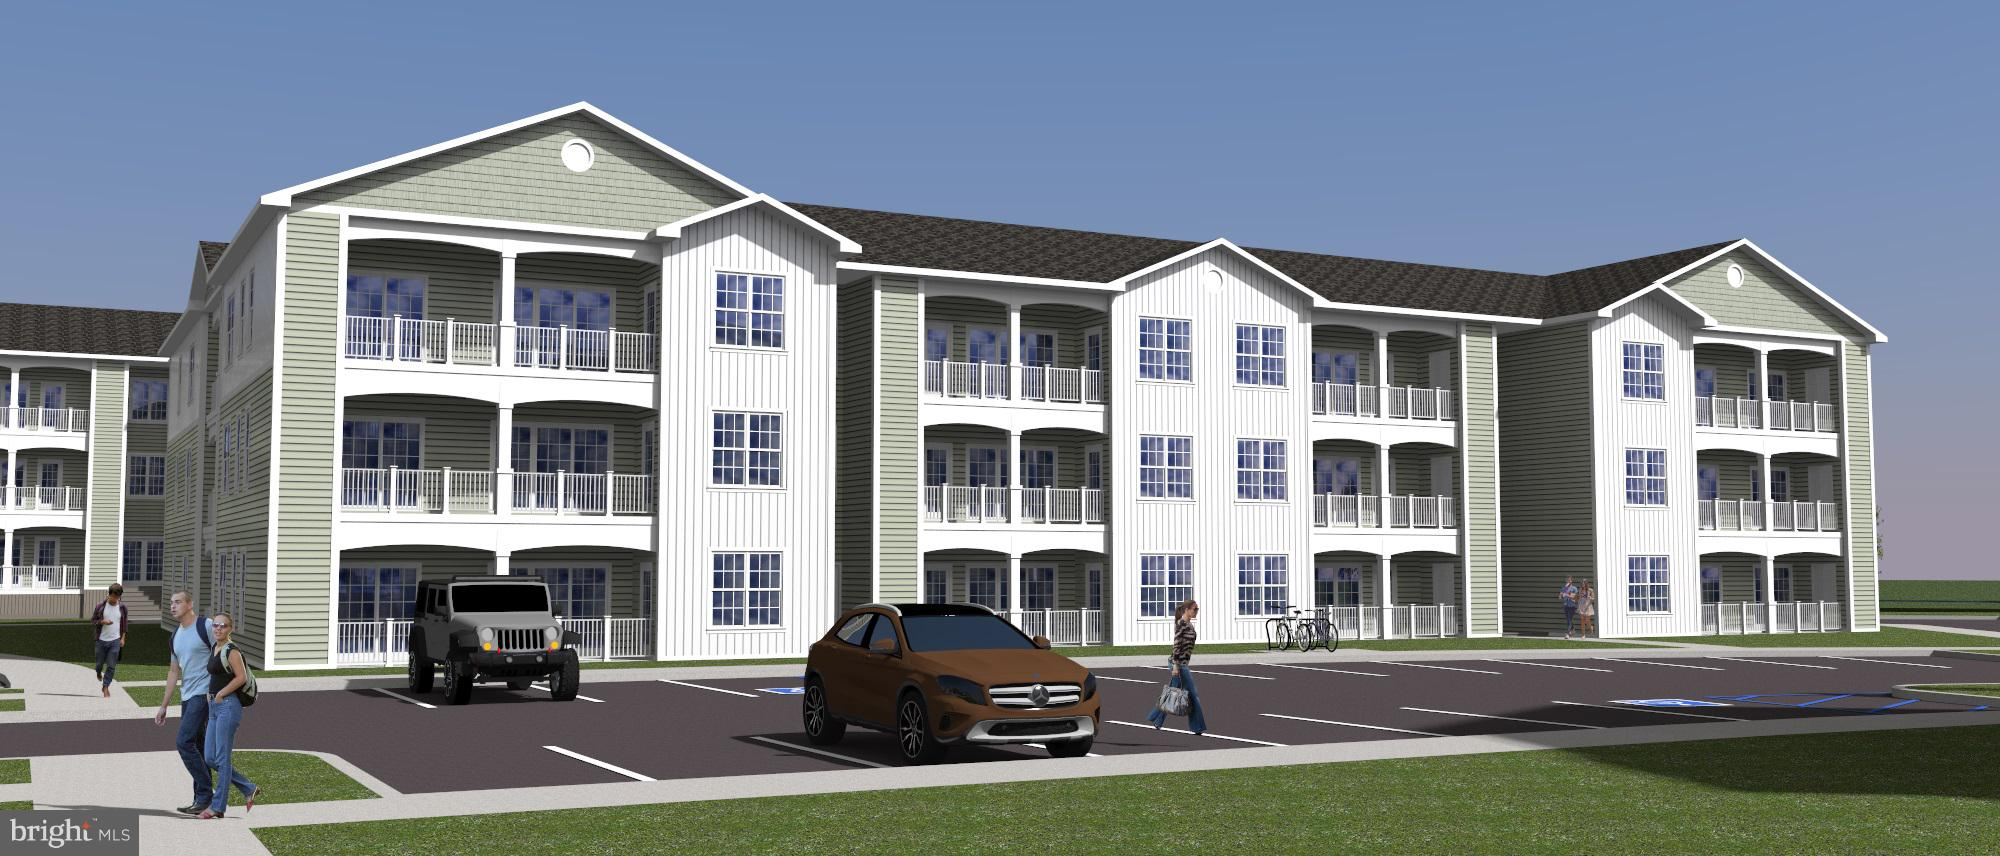 Come explore the newest condominium project in Lewes, Delaware. Located off of John J. Williams High